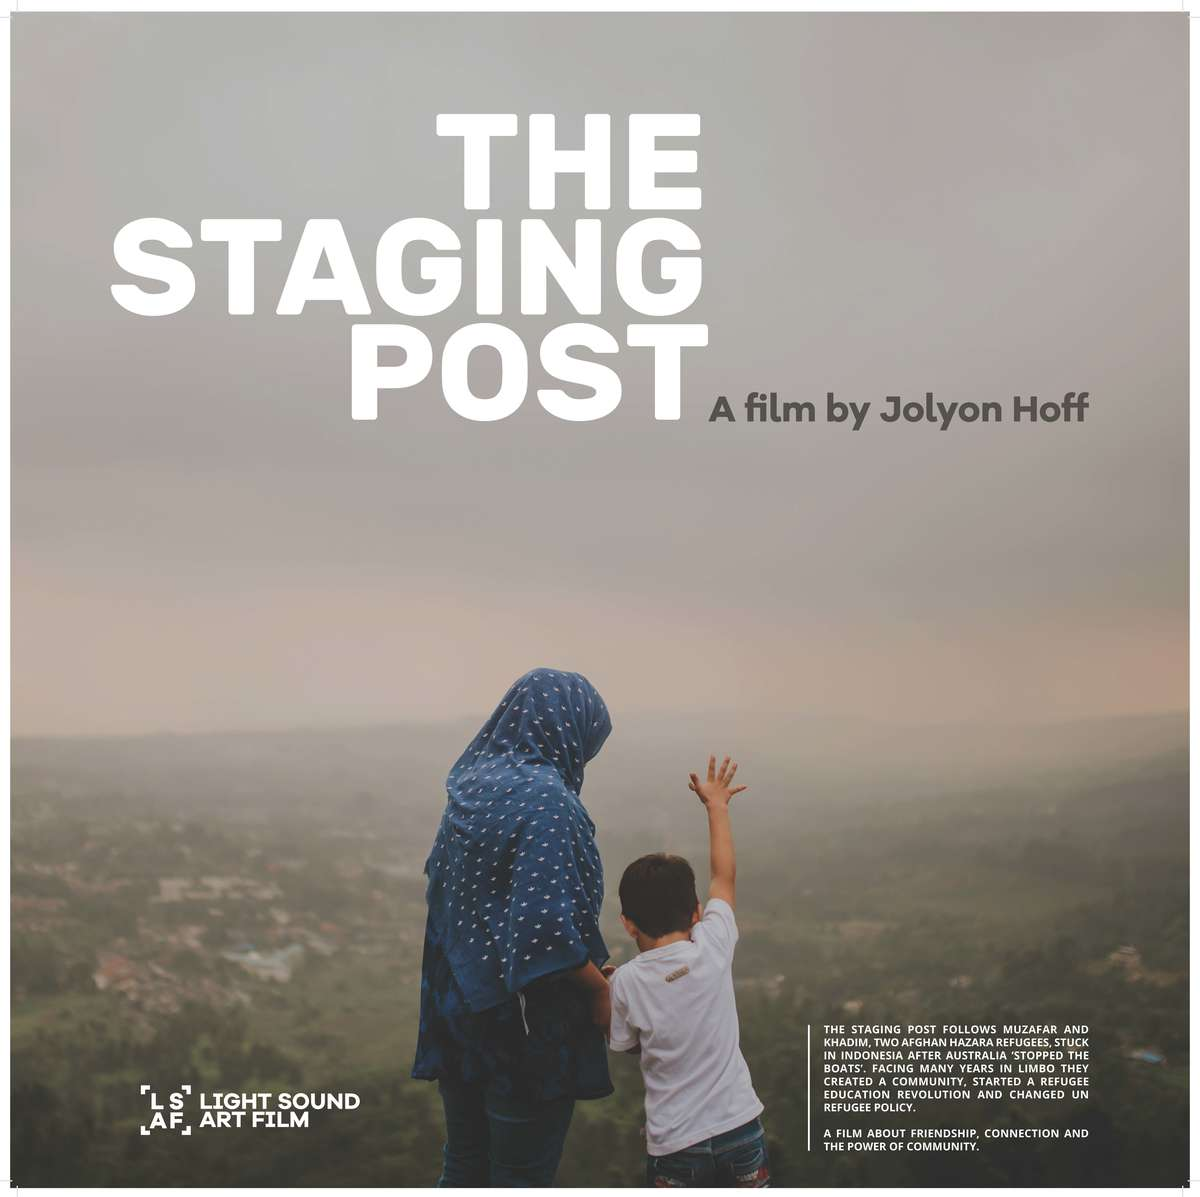 The Staging Post, a film by Jolyon Hoff, 2017. Courtesy The Staging Post/Cisarua Learning.